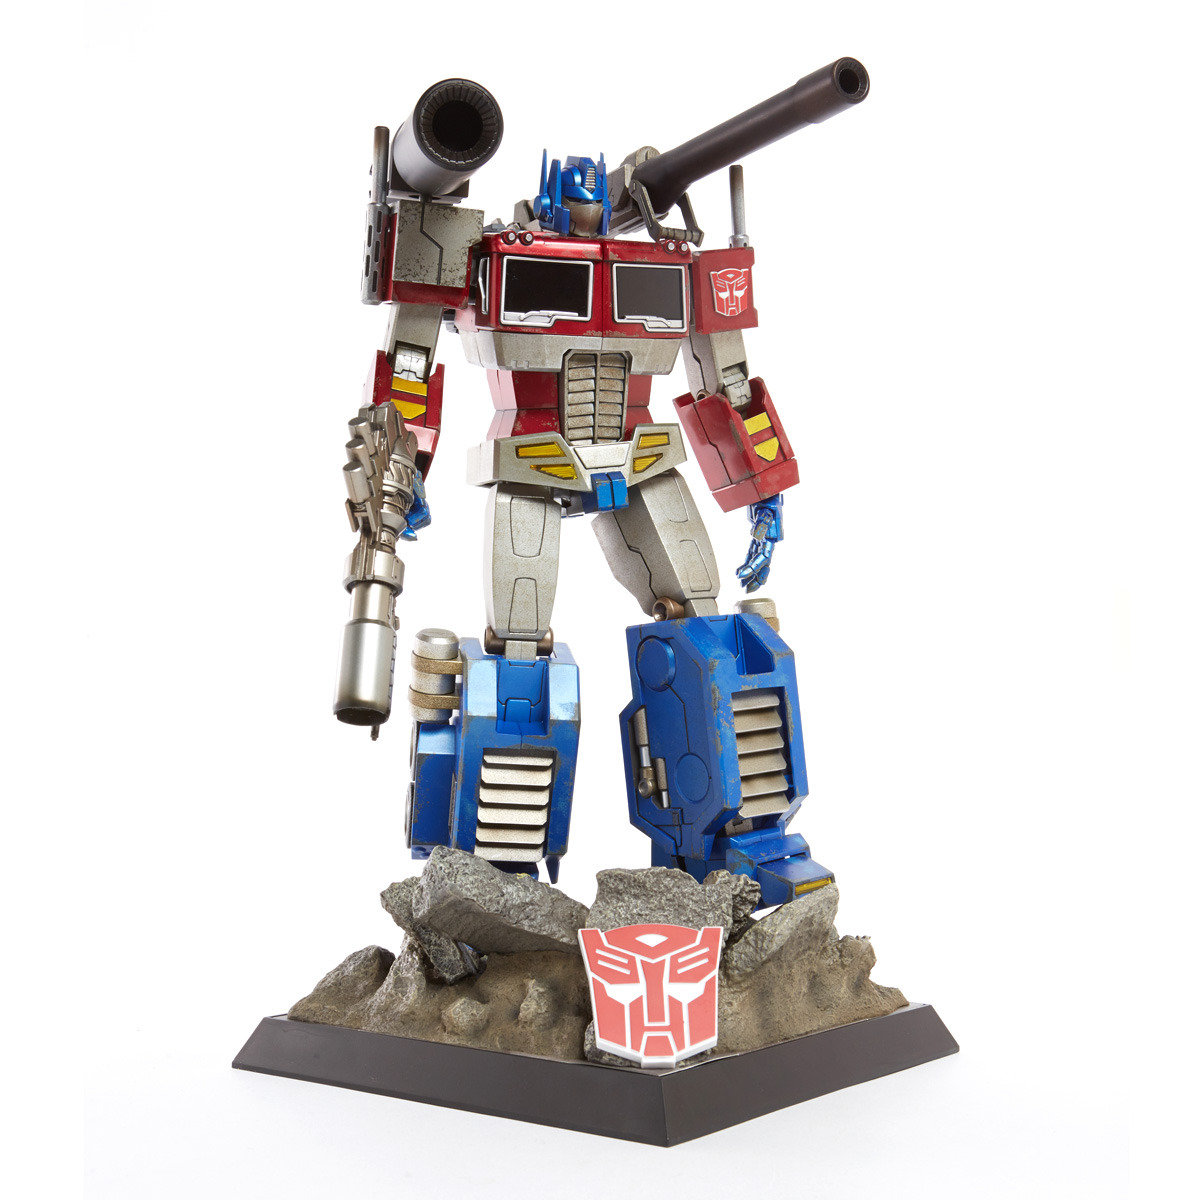 TF002 TRANSFORMERS OPTIMUS PRIME COLLECTIBLE FIGURE BY HOT TOYS (MEGATRON VERSION) ASIA EXCLUSIVE